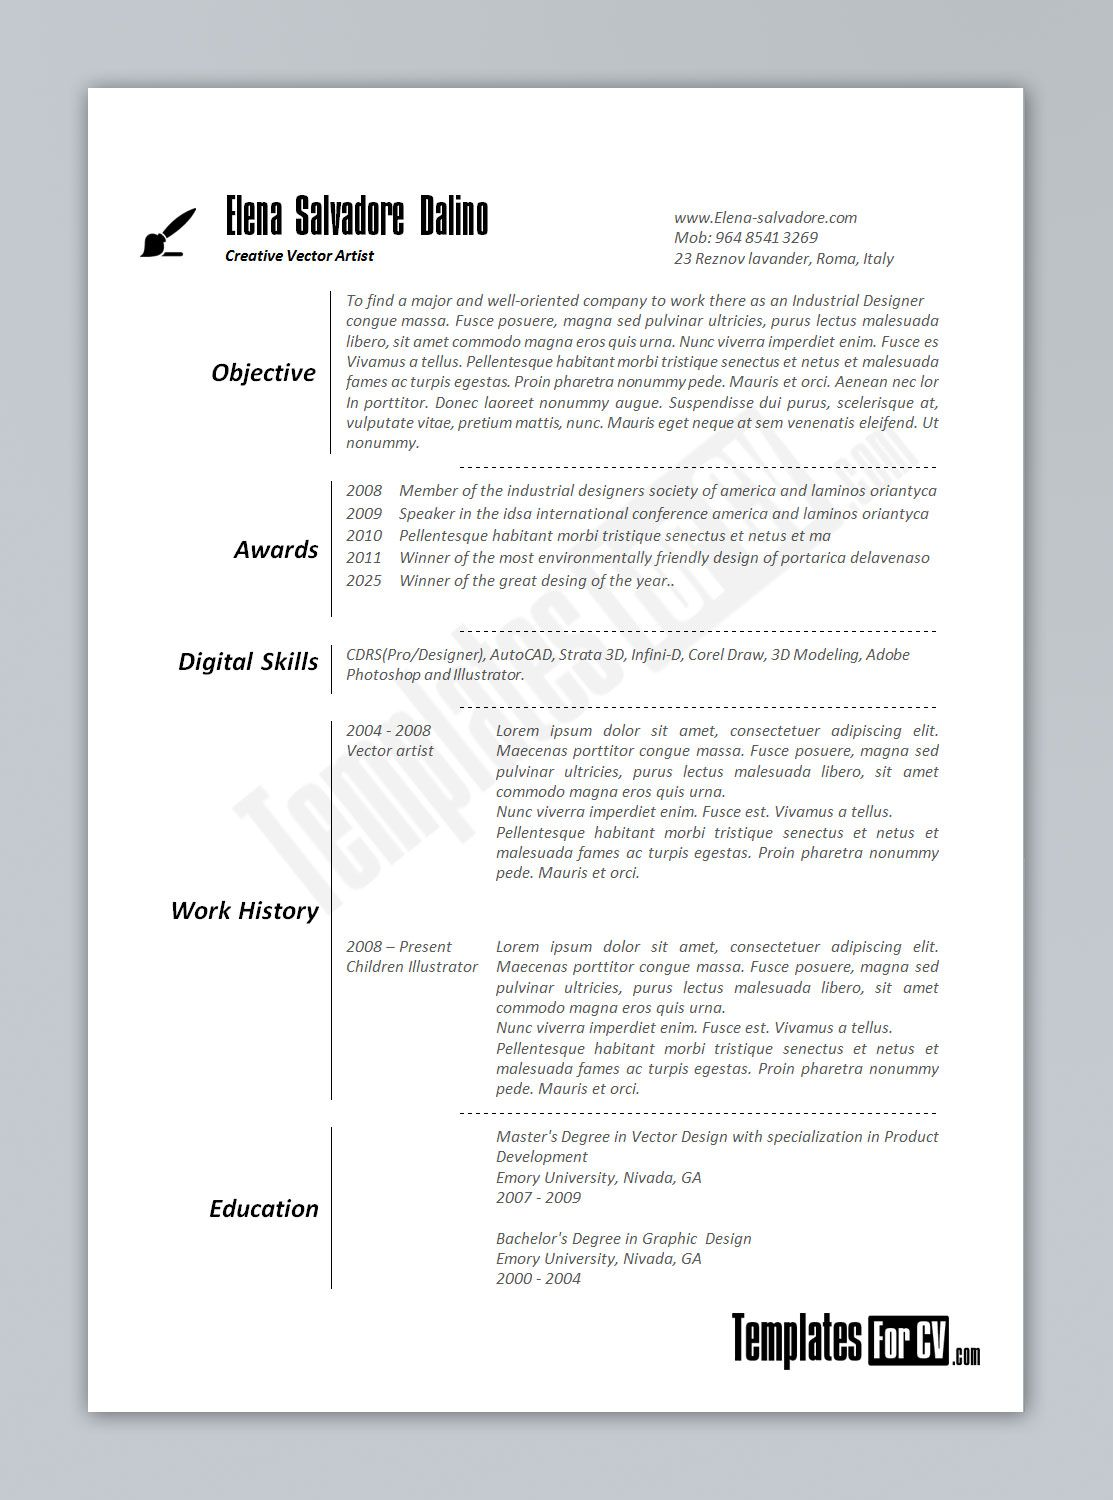 resume format for freshers resume format for artist cv template is a clean and stylish resume you can for open it in your favorite word editor place your detail and win that job